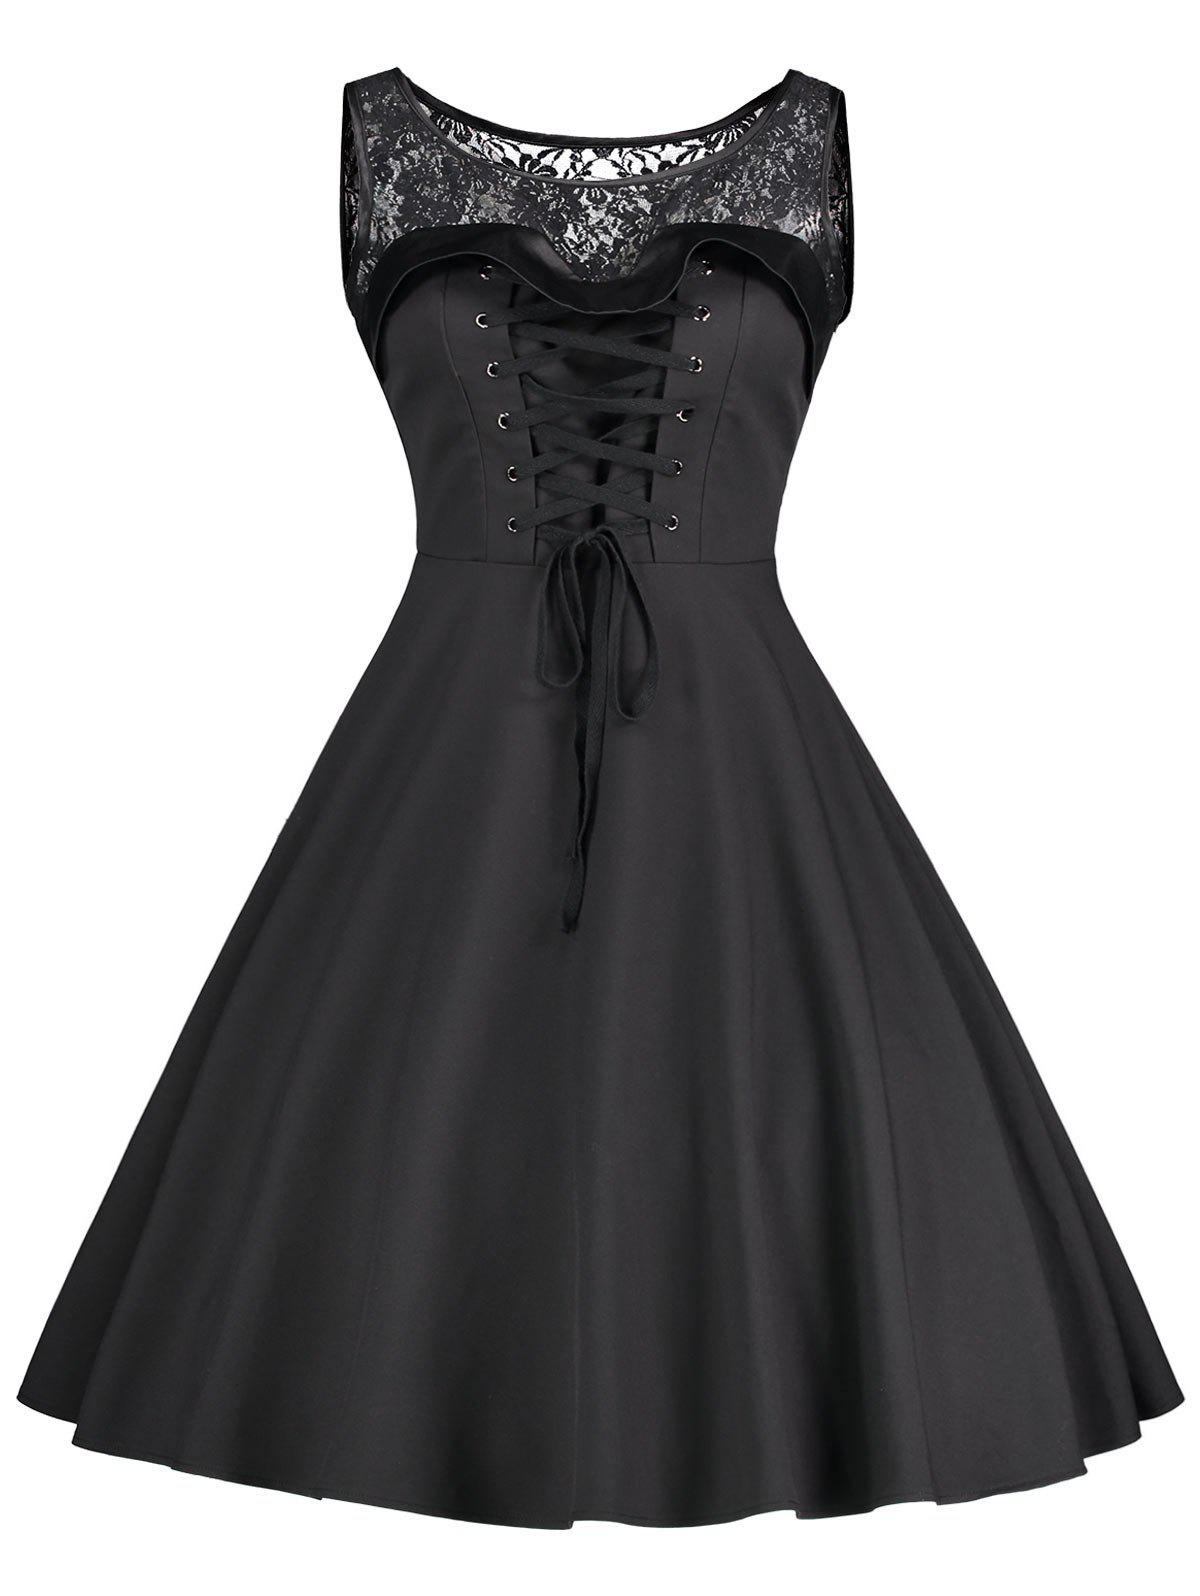 Lace Up Sleeveless Fit and Flare Dress - BLACK M